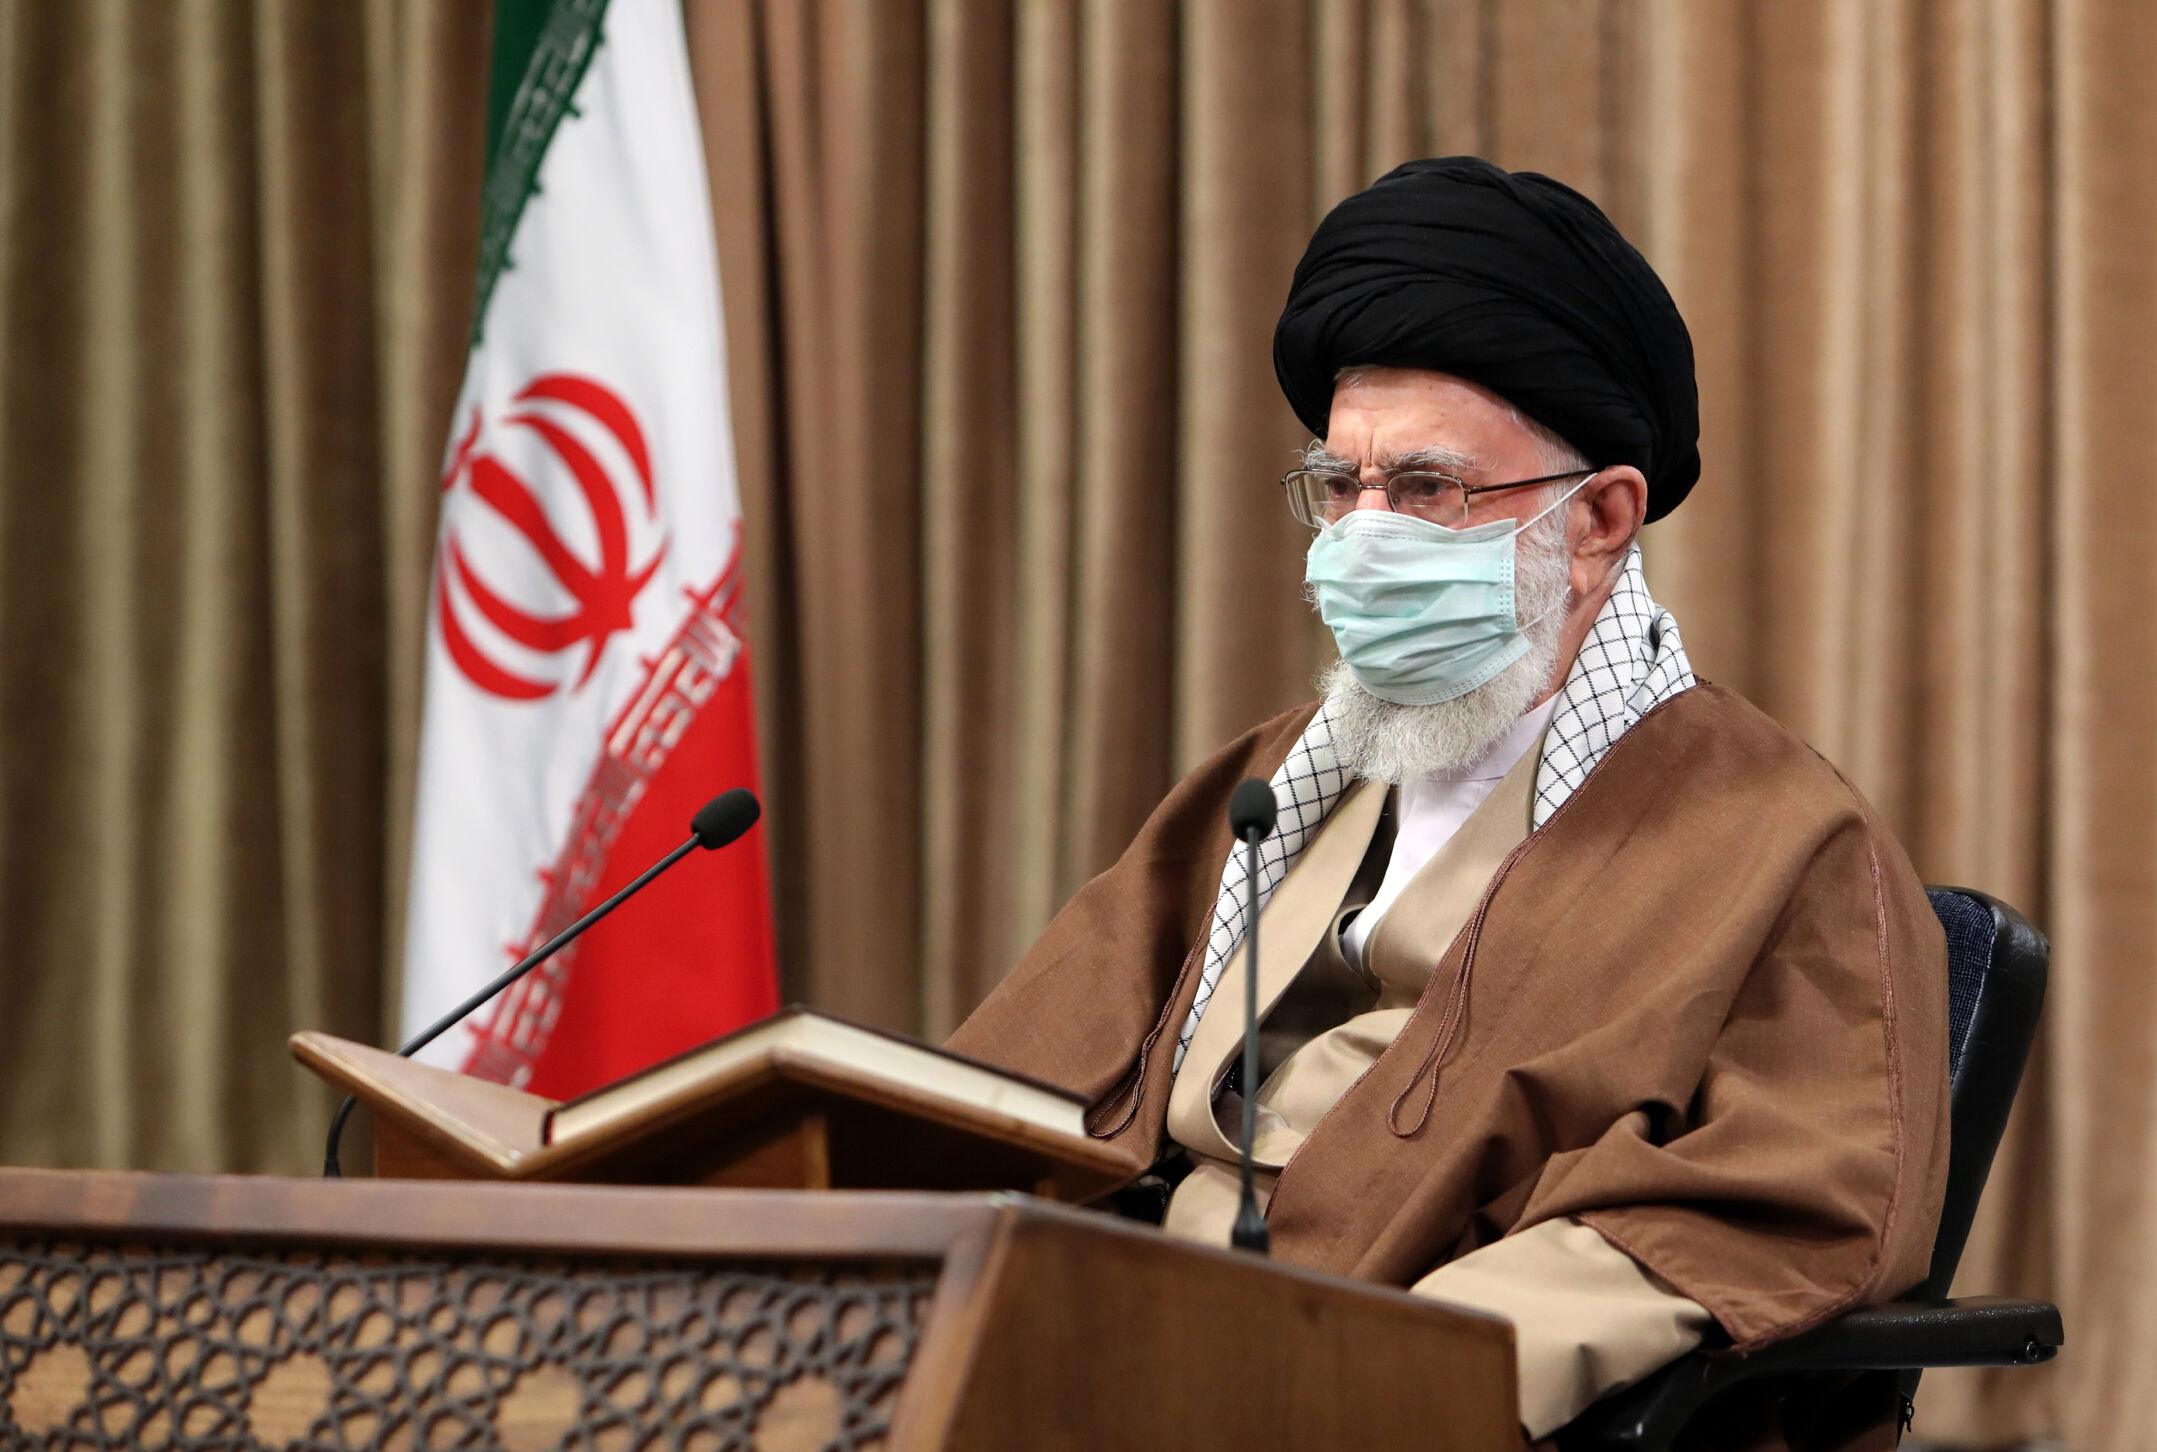 In this picture released by an official website of the office of the Iranian supreme leader, Ayatollah Ali Khamenei, wearing a protective face mask, attends a meeting in Tehran, Iran, Wednesday, April 14, 2021.